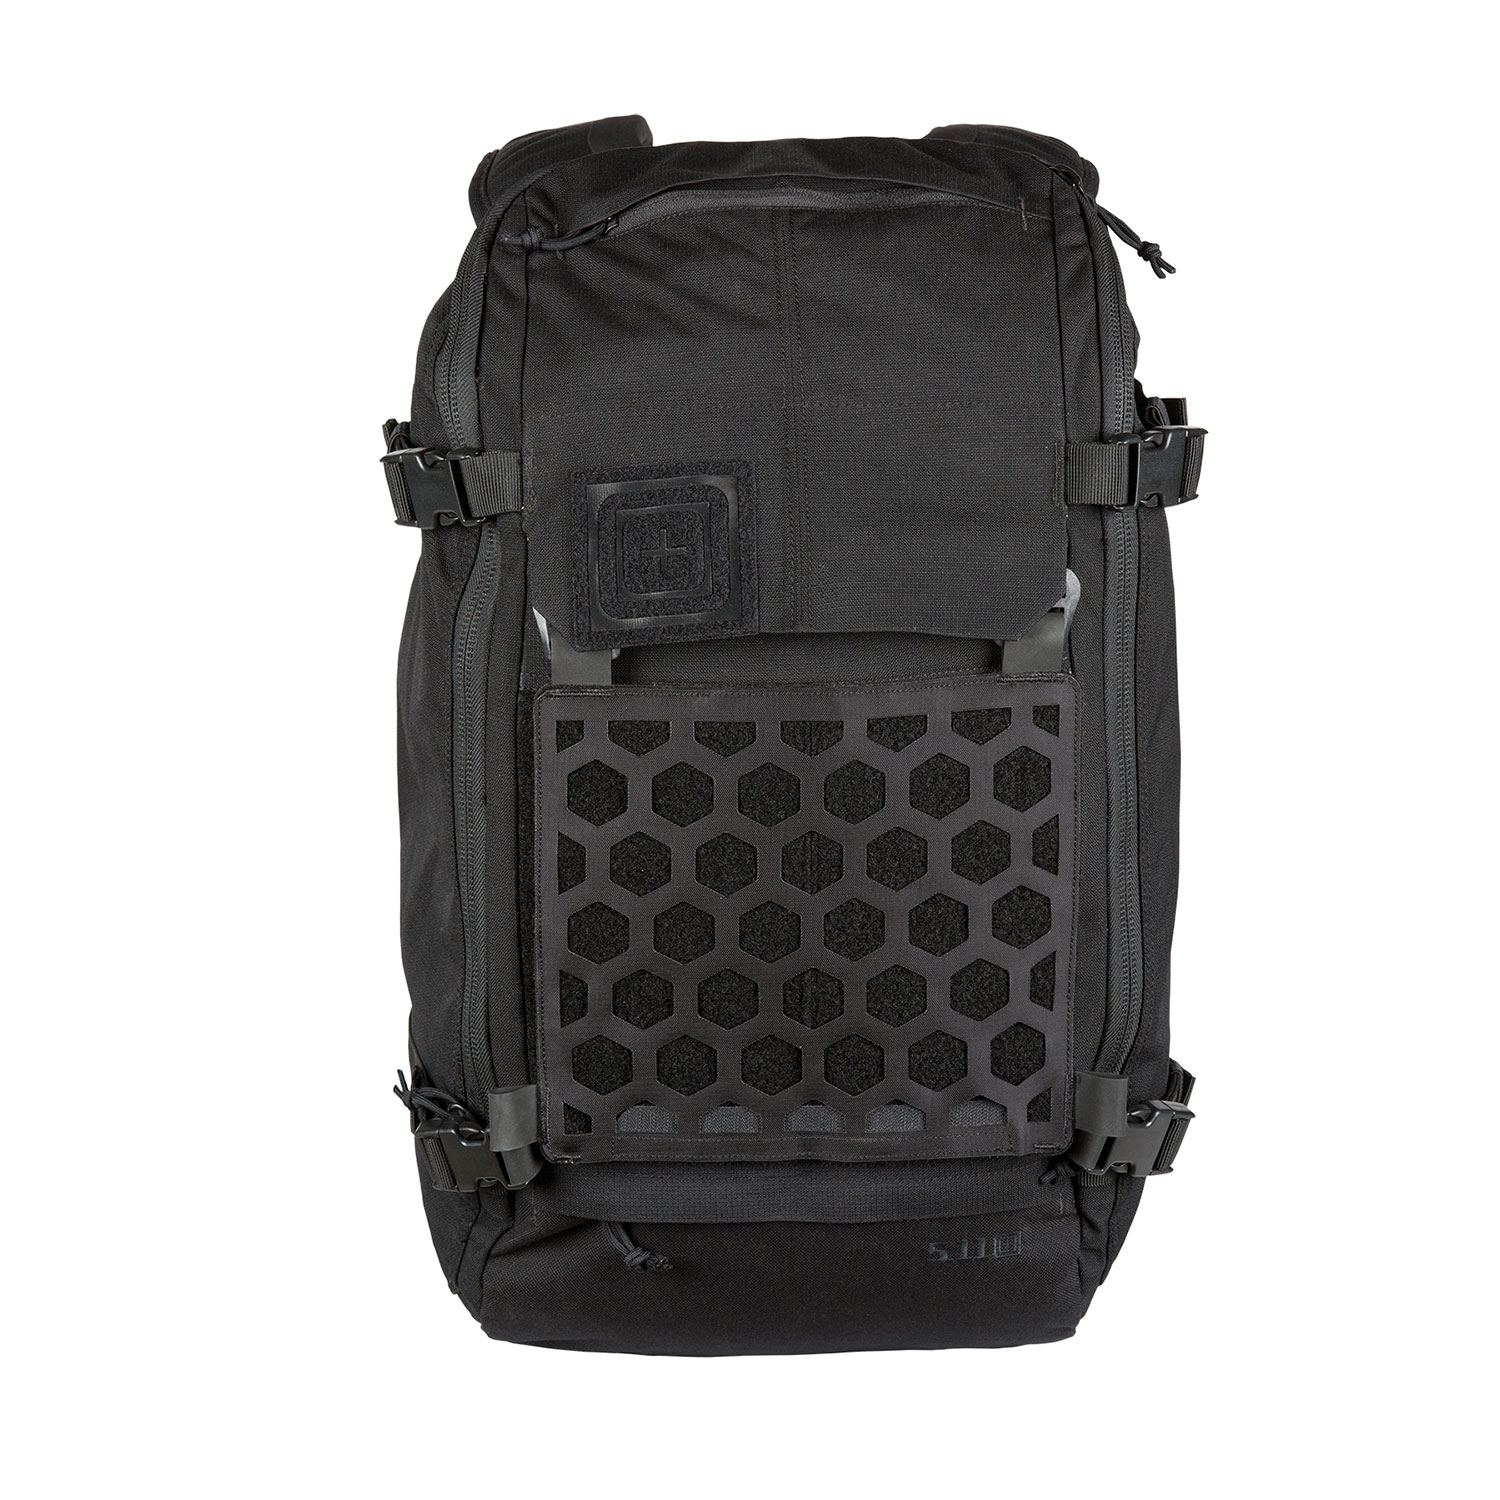 5.11 AMP24 Tactical Backpack